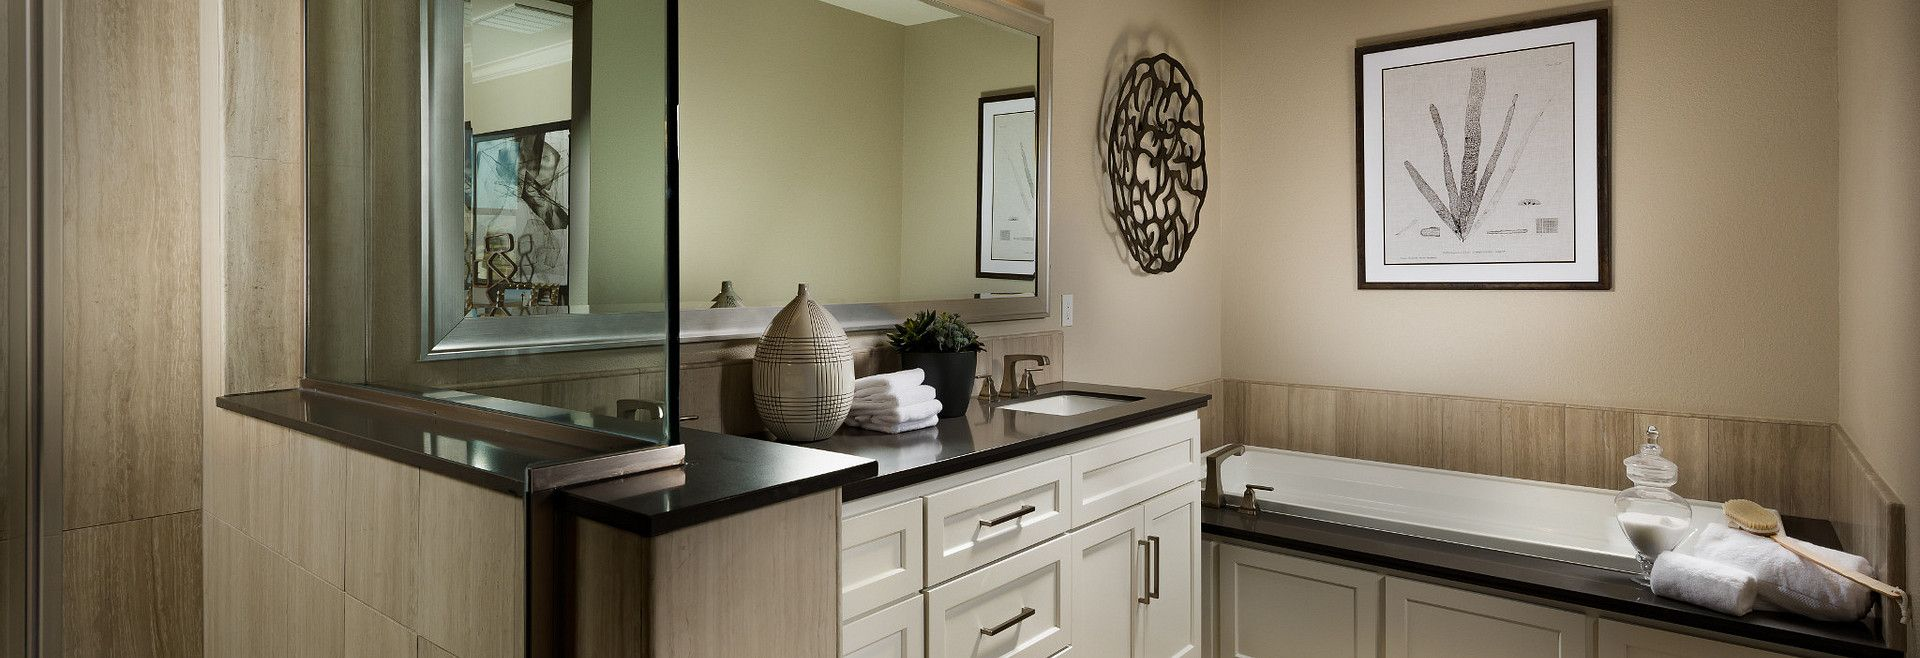 Bathroom featured in the Plan 7 By Shea Homes in Oakland-Alameda, CA